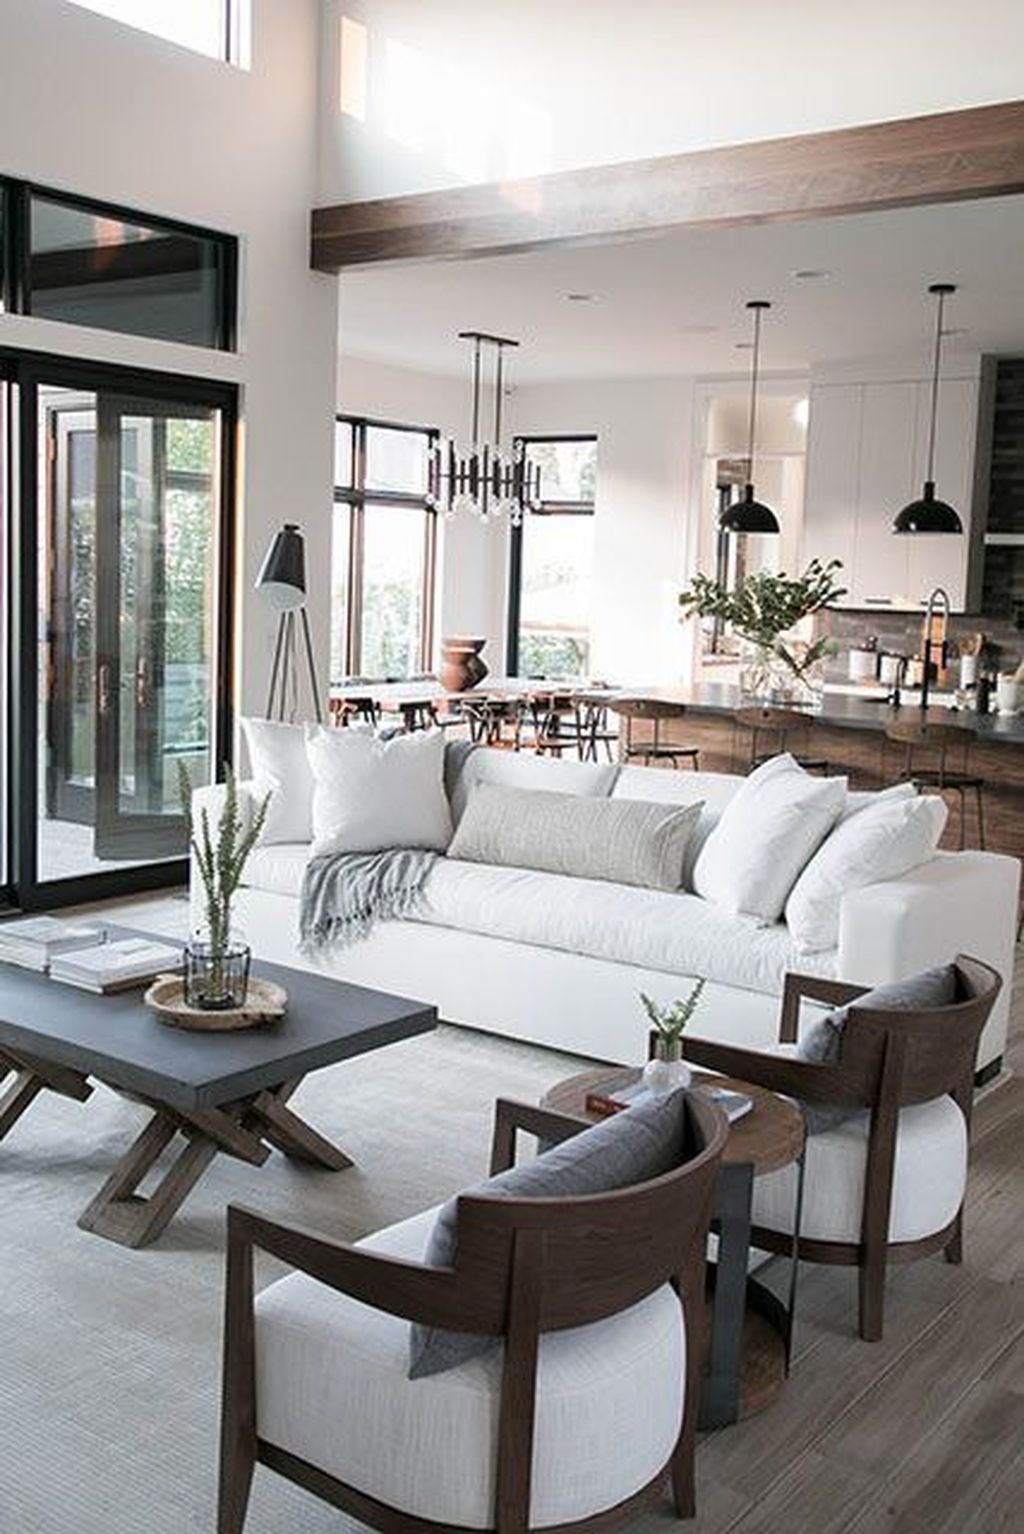 Fantastic Open Plan Living Room Design Ideas To Copy Right Now 02